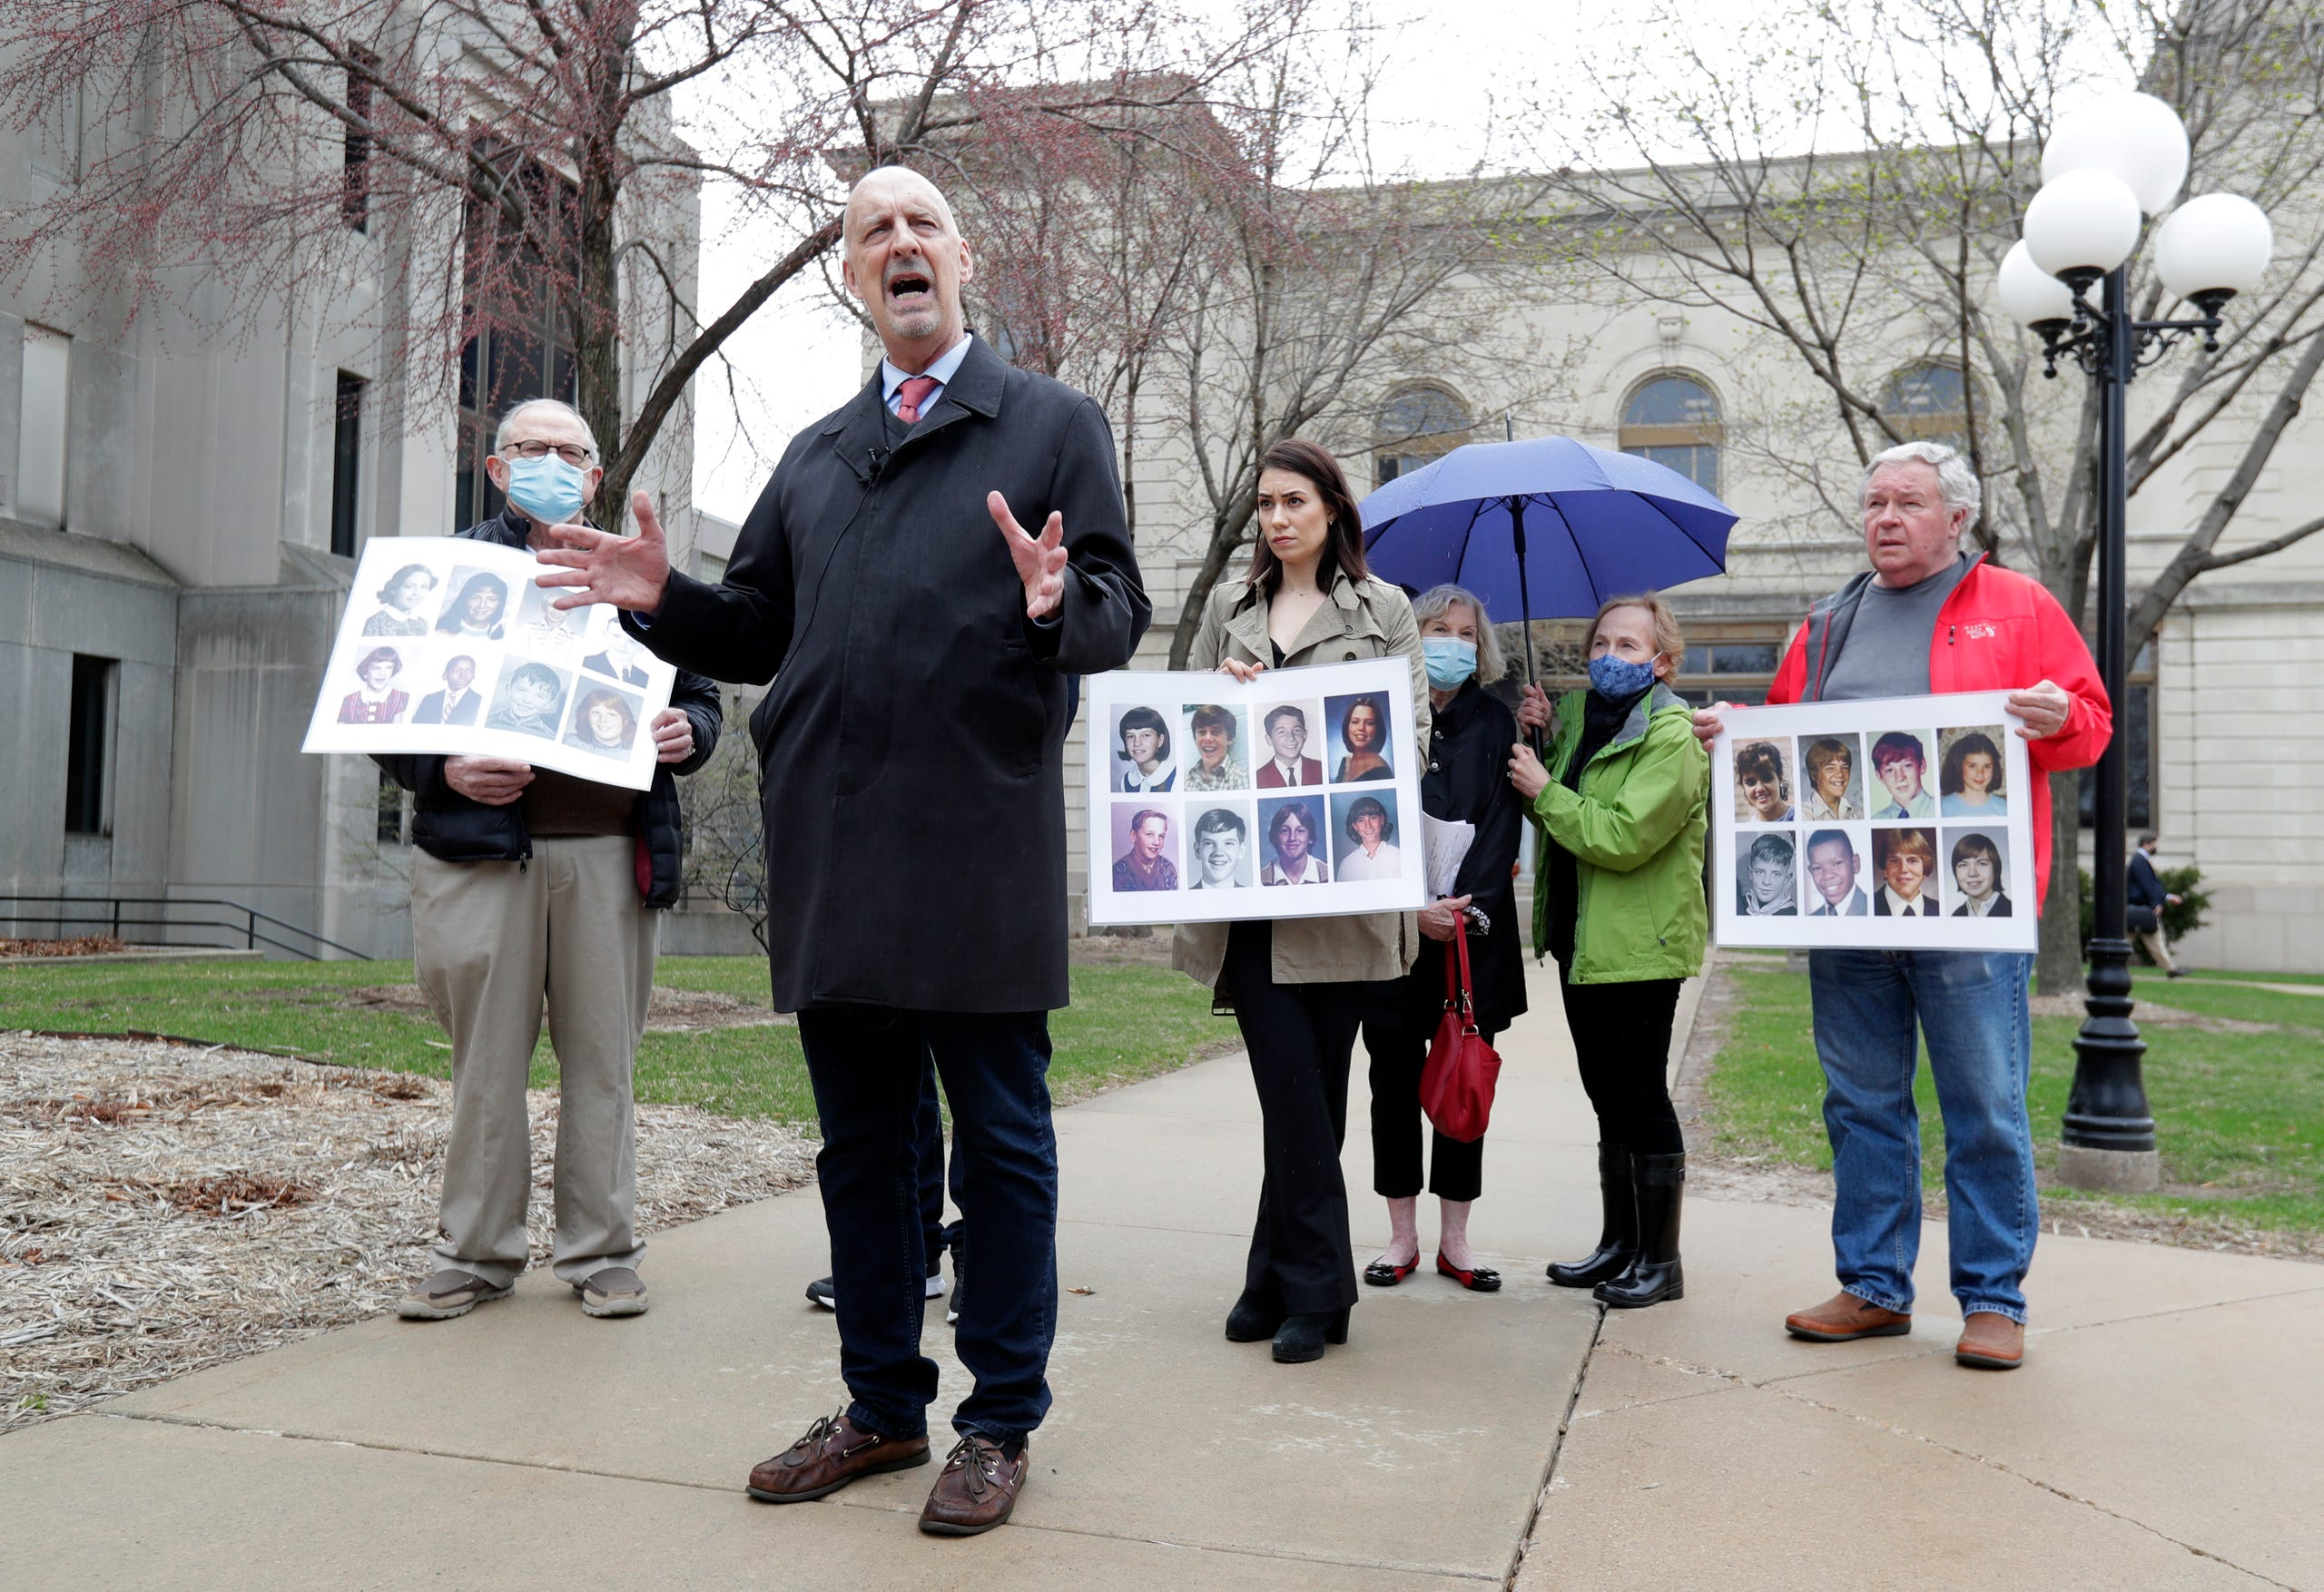 Peter Isely, program director of Nate's Mission, speaks outside the Brown County District Attorney's office on April 8, 2021, to advocate for reopening a sex abuse case against a priest with known offenses and ties to St. Norbert Abbey. Show less. Sarah Kloepping / USA Today Network-Wisconsin